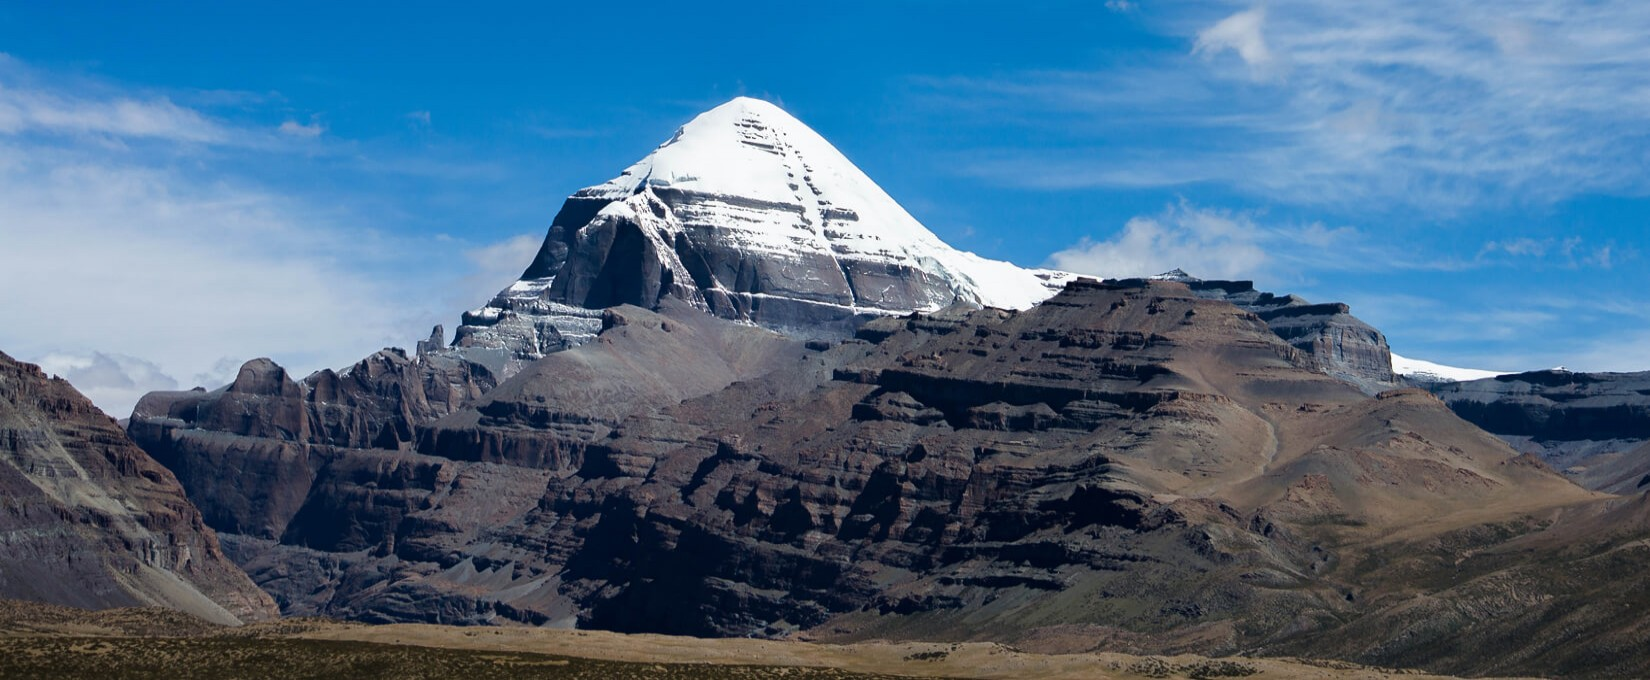 Mt. Kailash is known as the roof of the world